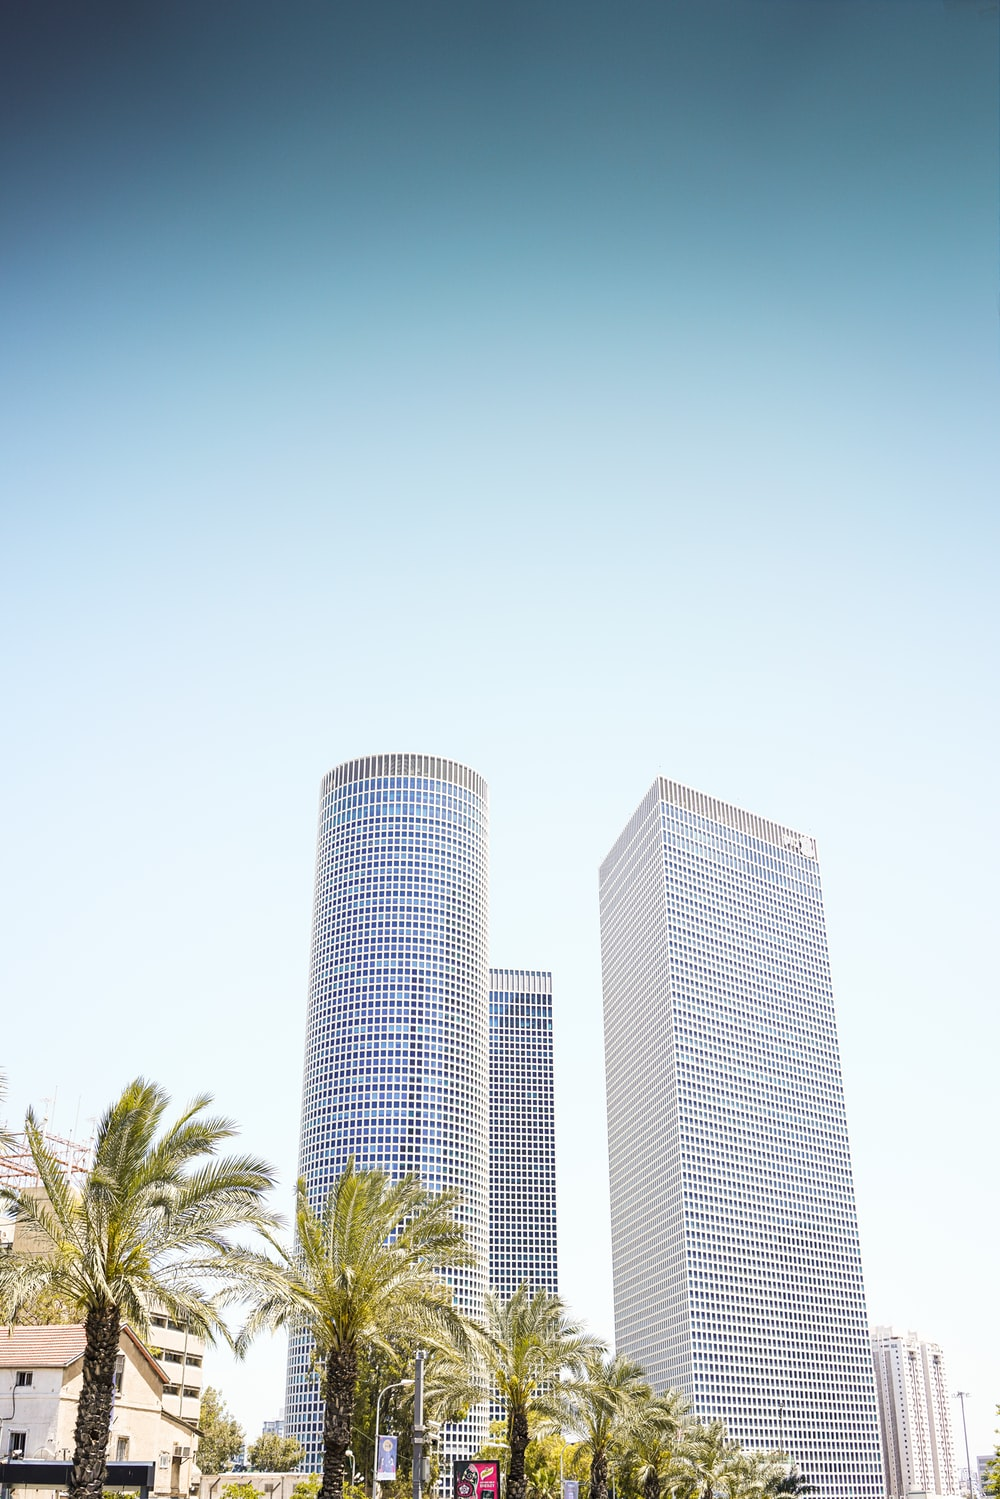 three high-rise buildings near palm trees